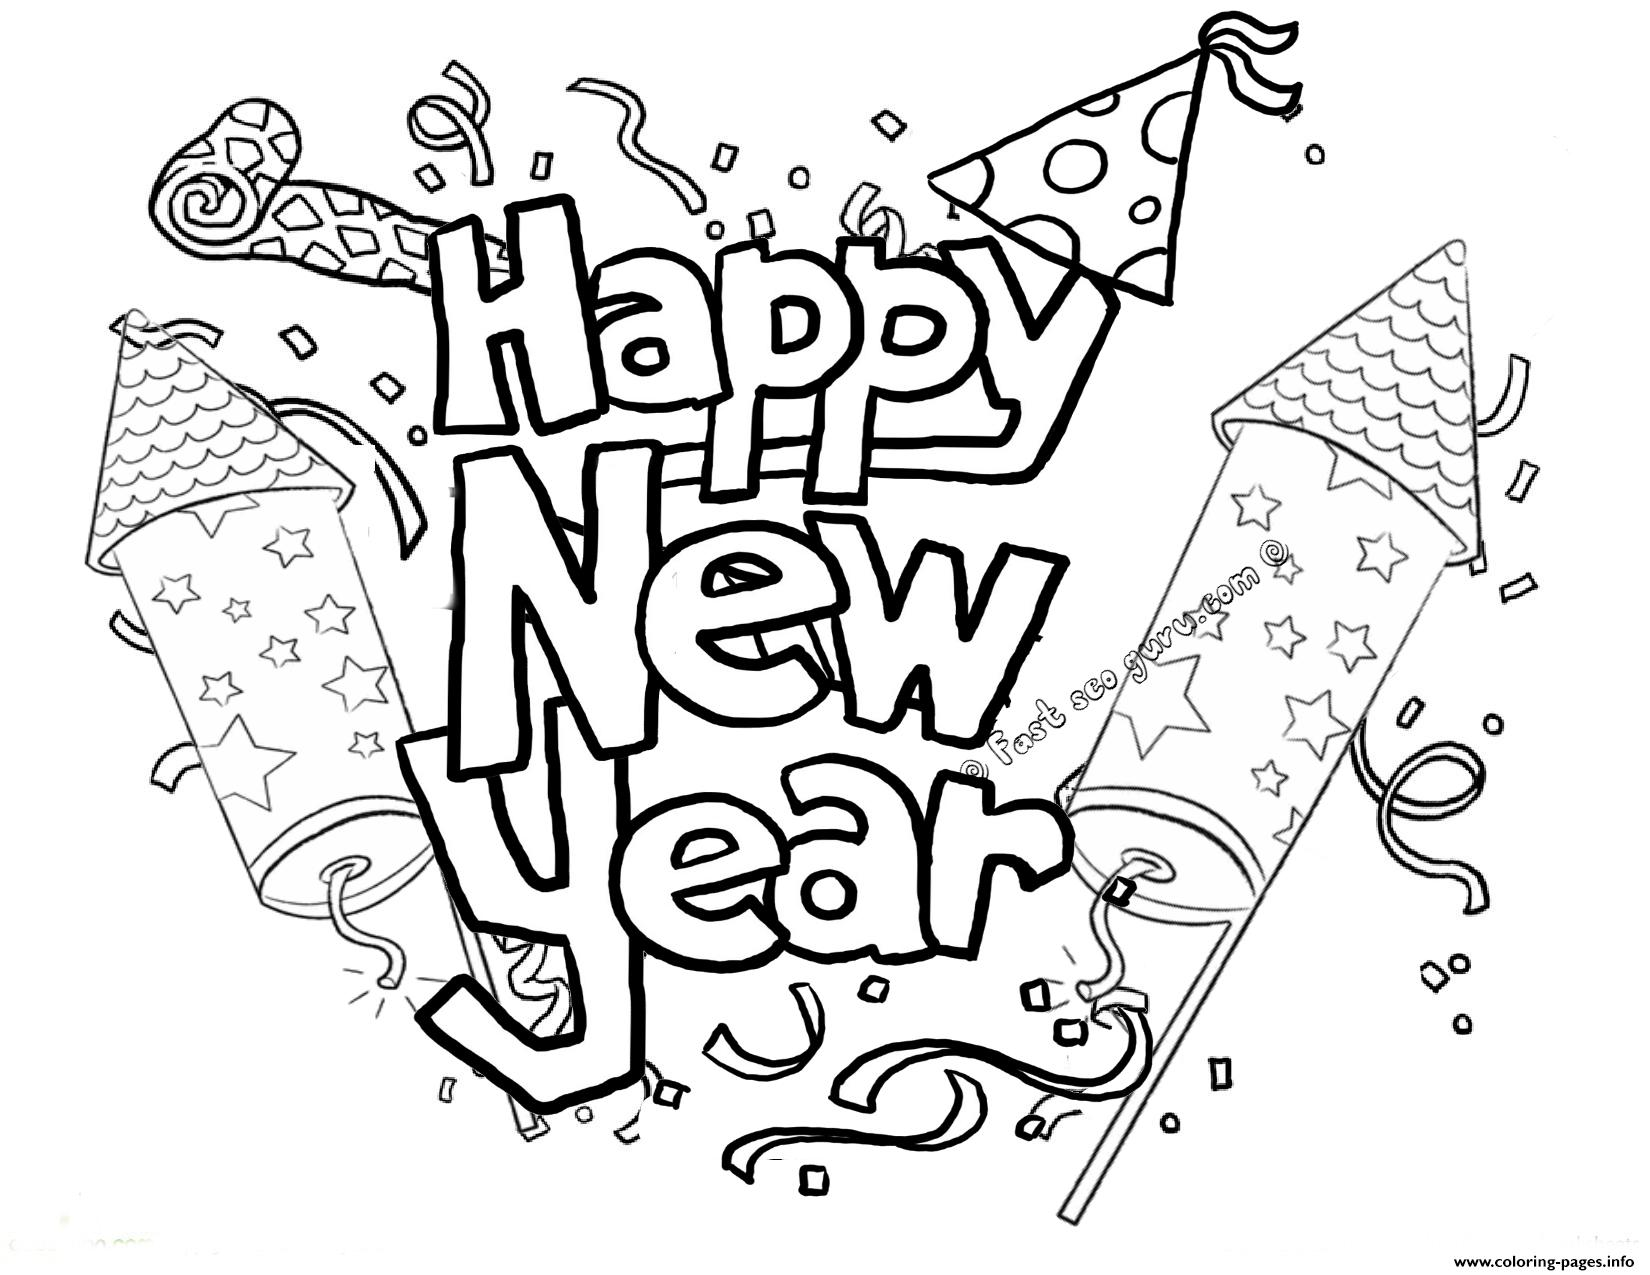 Happy New Year Printable 2 Coloring Pages Printable